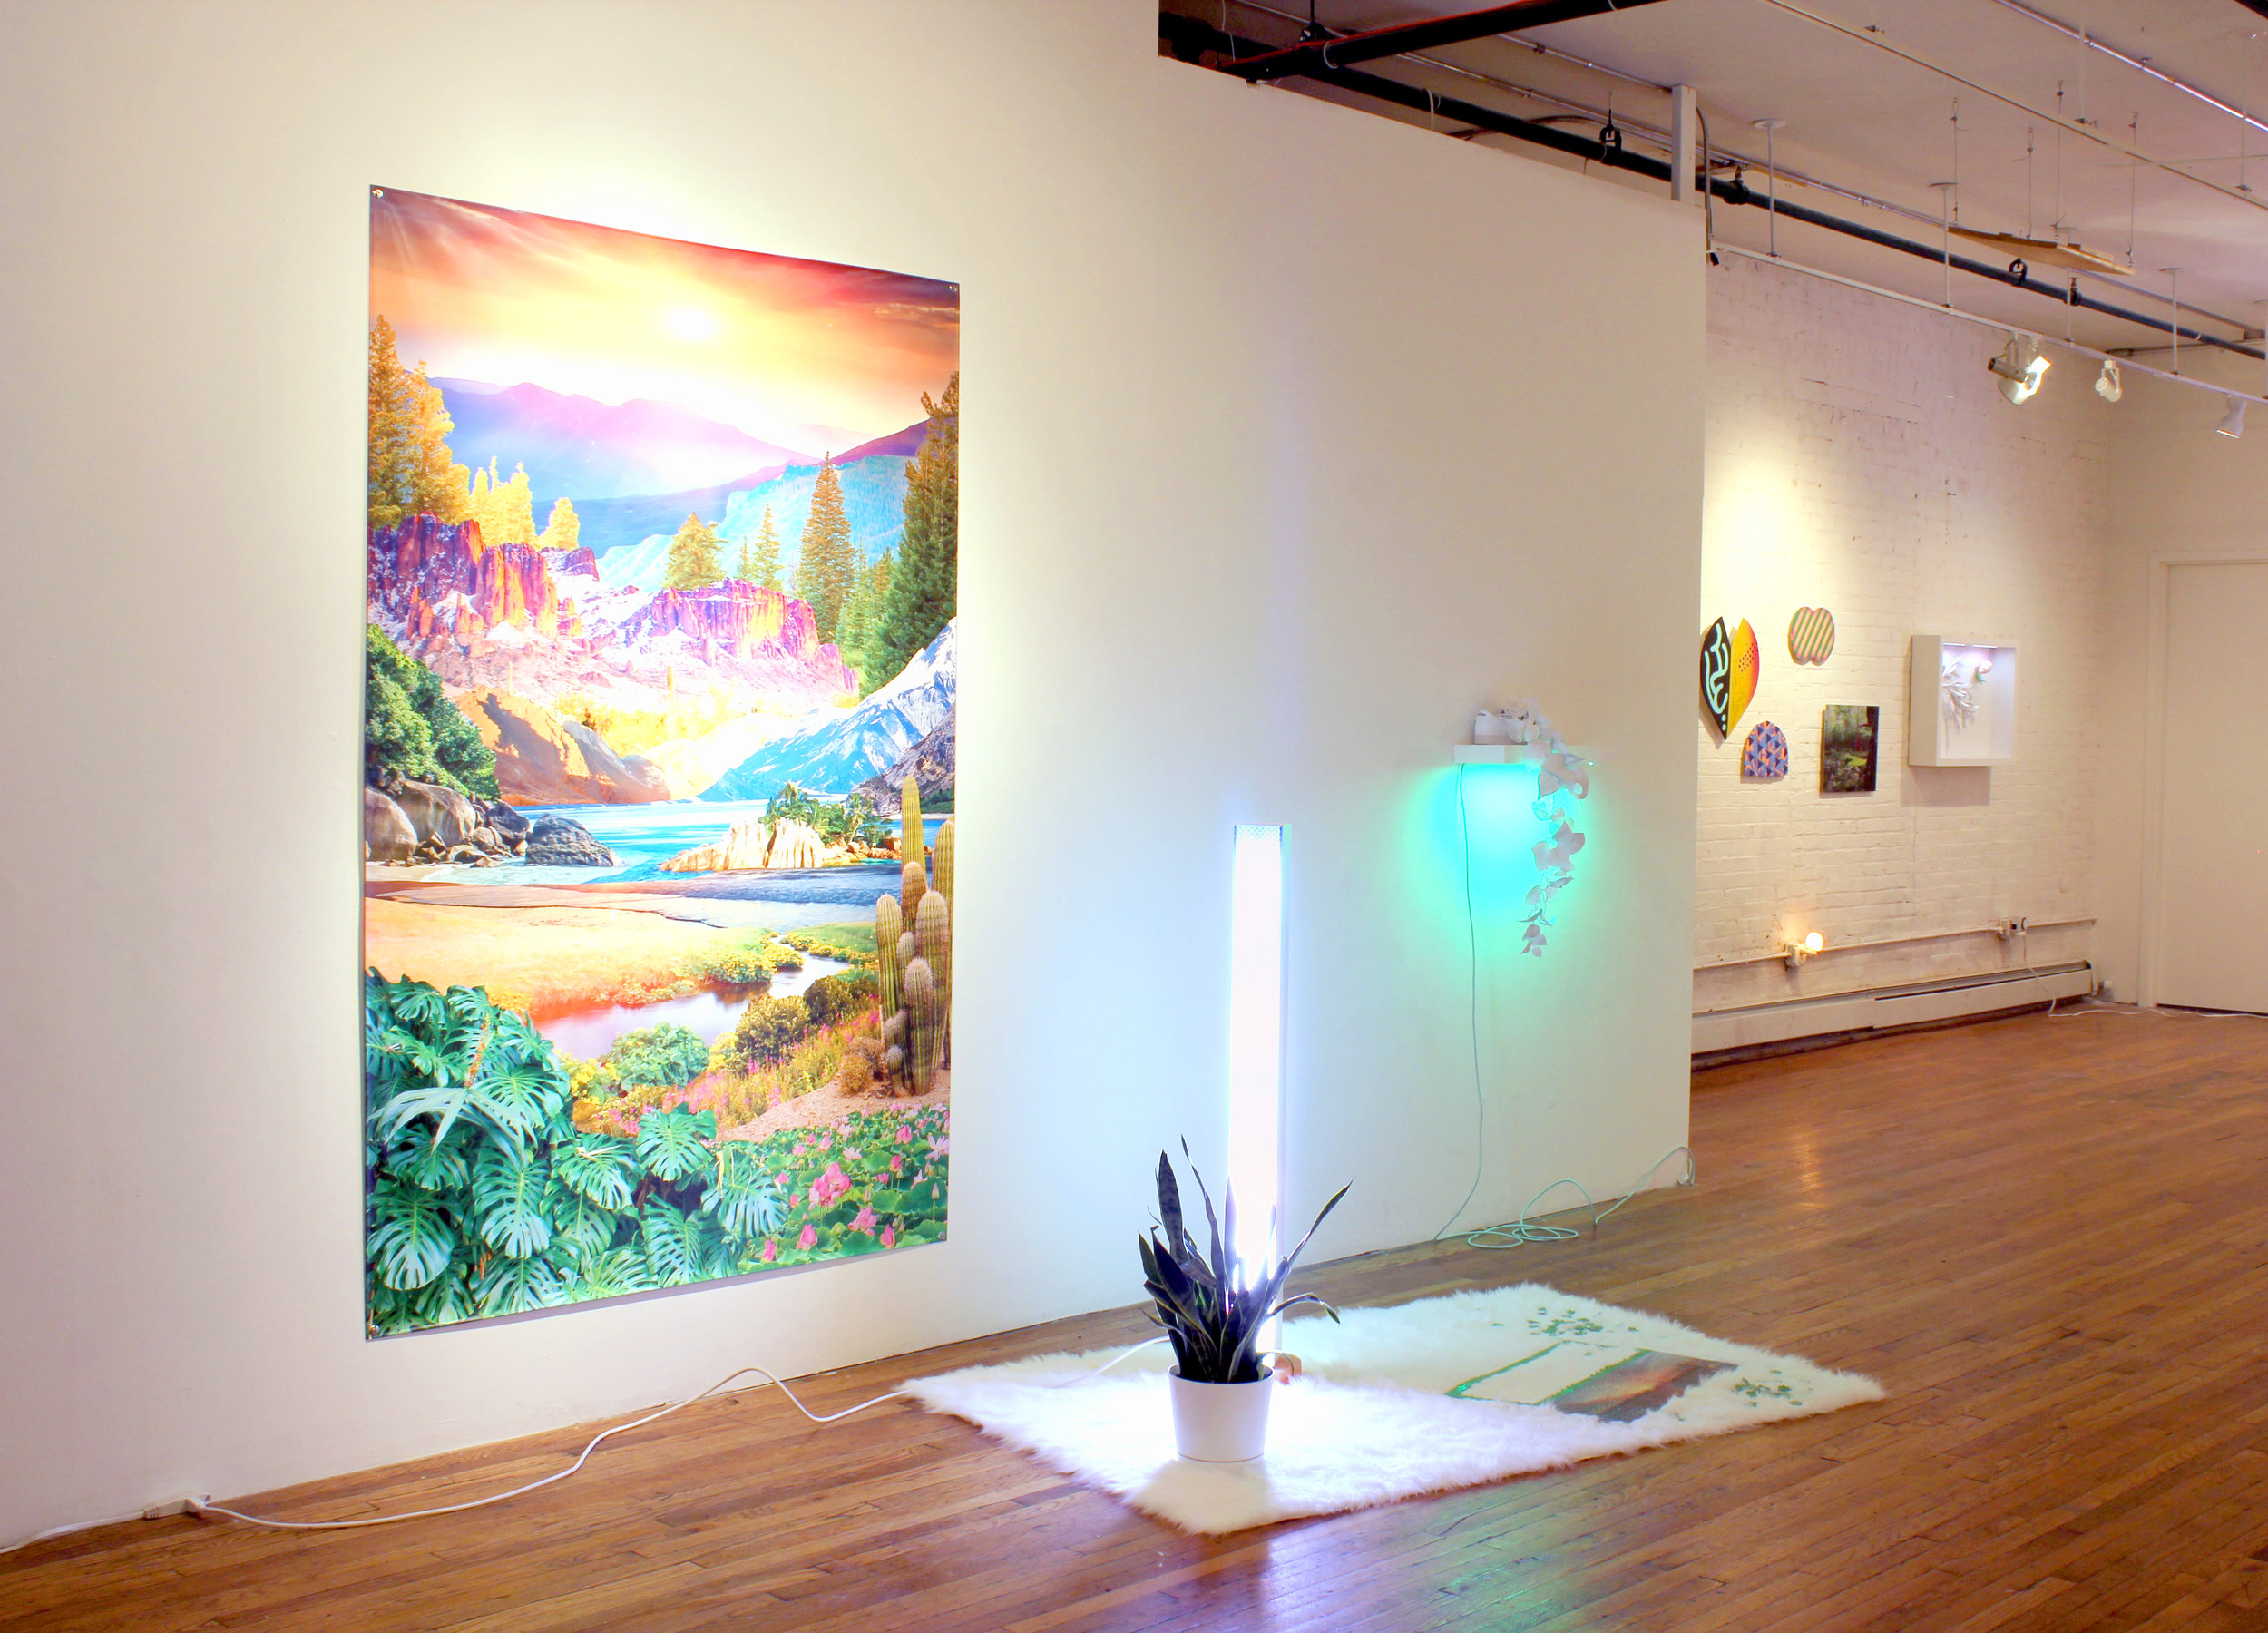 Matt Spahr and Val Molnar  Sunset for a transcendent driver  2017 Step-and-repeat, shag rug, sunset lights, snake plant, puzzle, salt rock 10' x 15' 8'